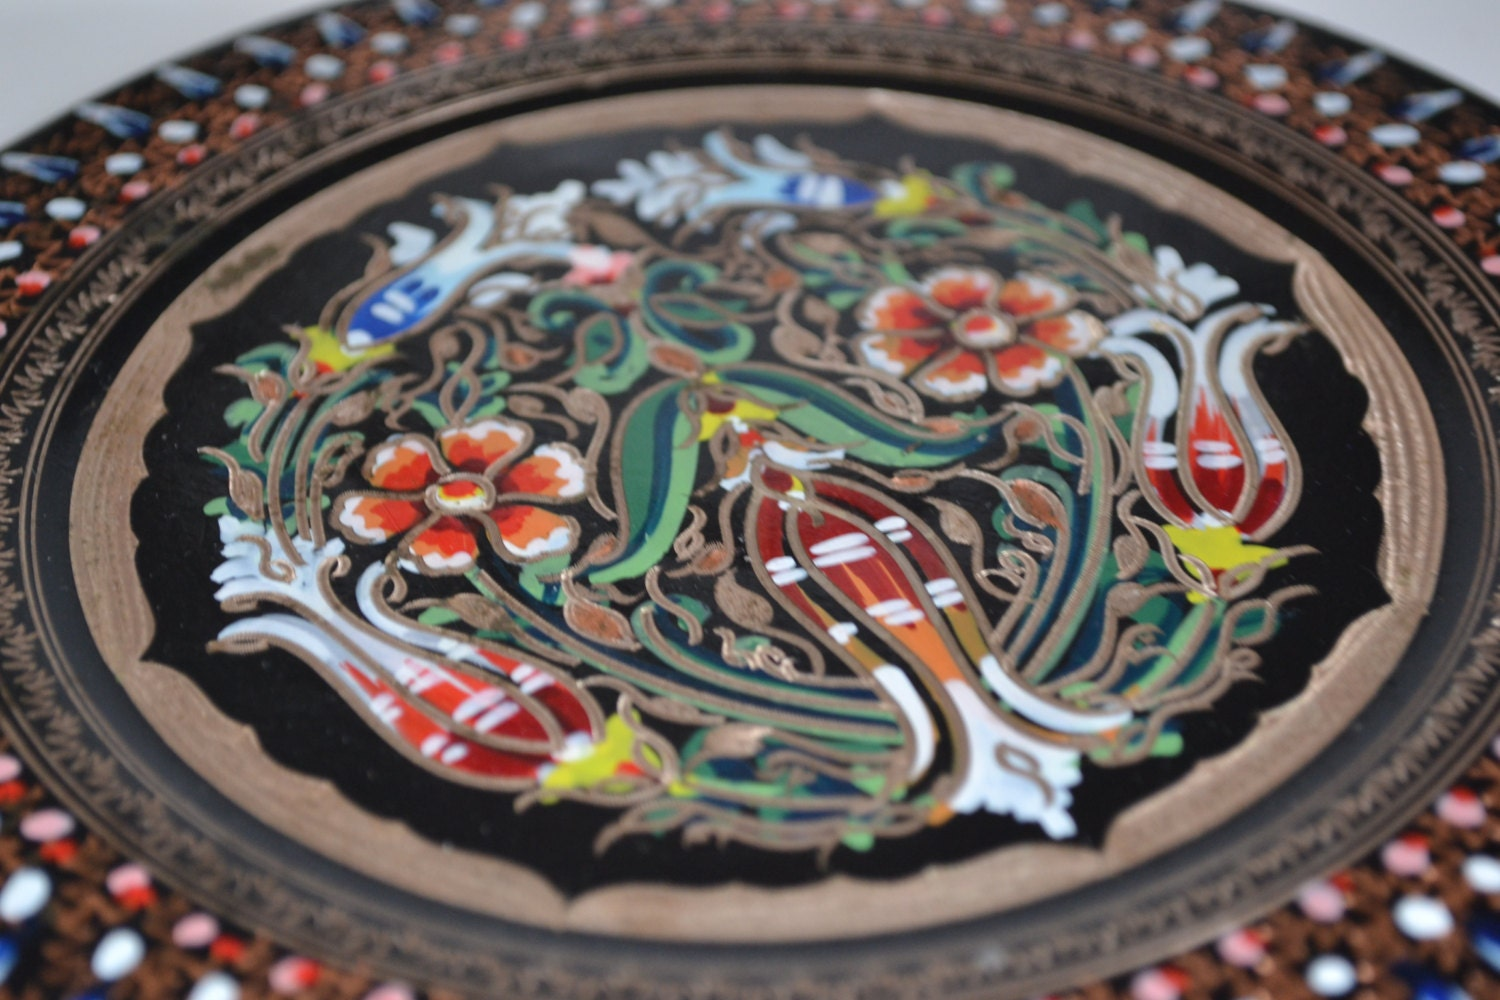 Decorative Wall Plates For Hanging: Antique Colourful Wall Decor Plate/ Hand Painted Metal Wall